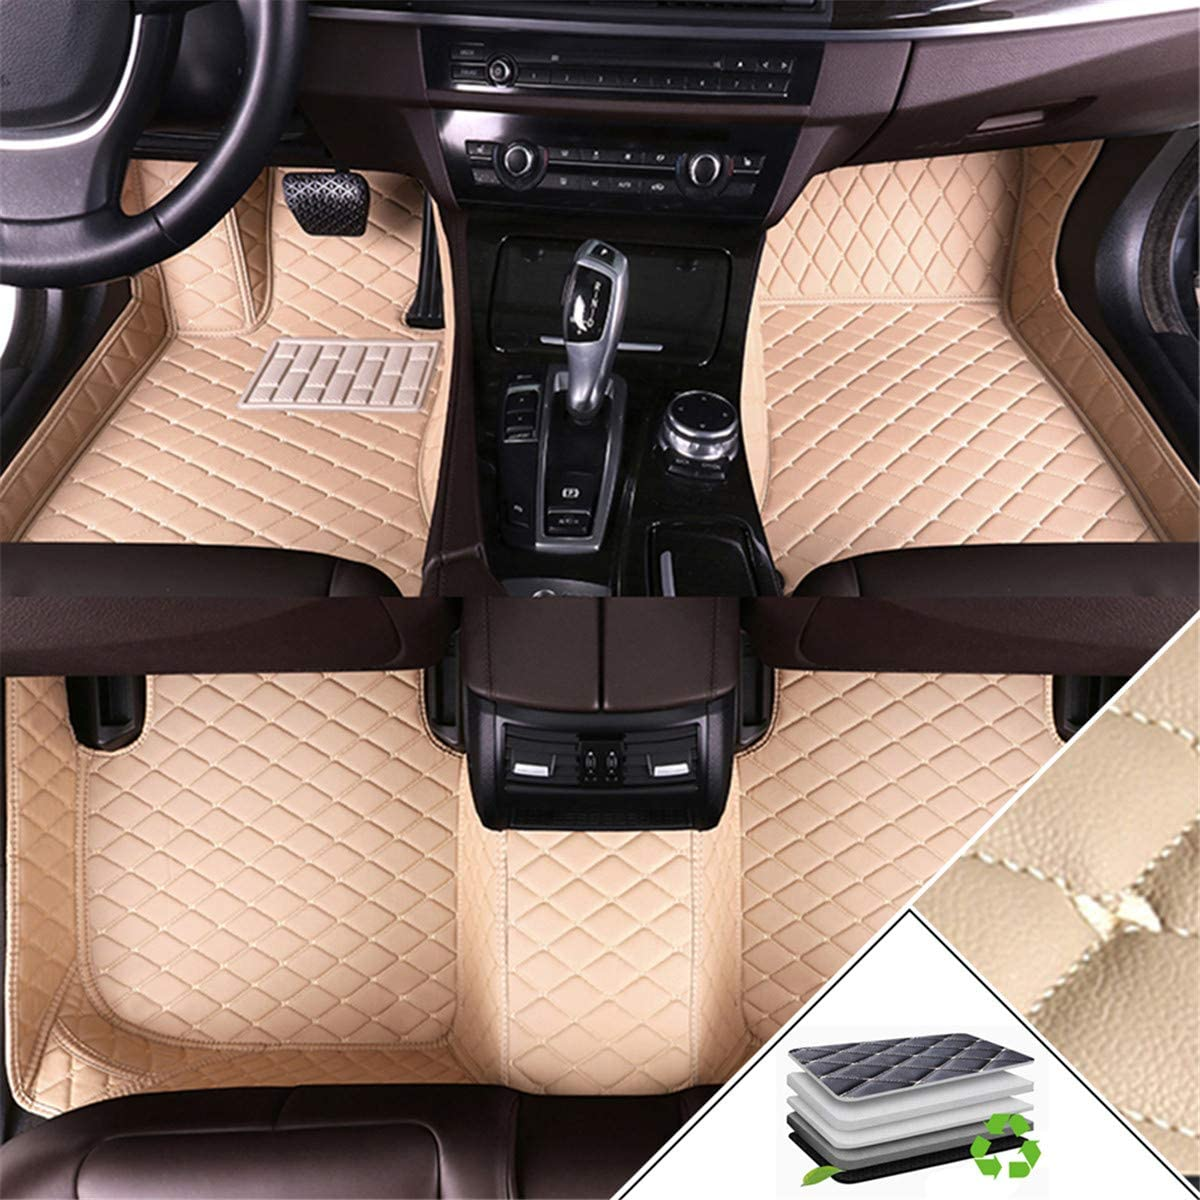 Handao-US Custom Car Floor Mats for Acura MDX 2007-2013 All Weather Non-Slip Full Coverage Protection Luxury Leather Car Liner Set Beige